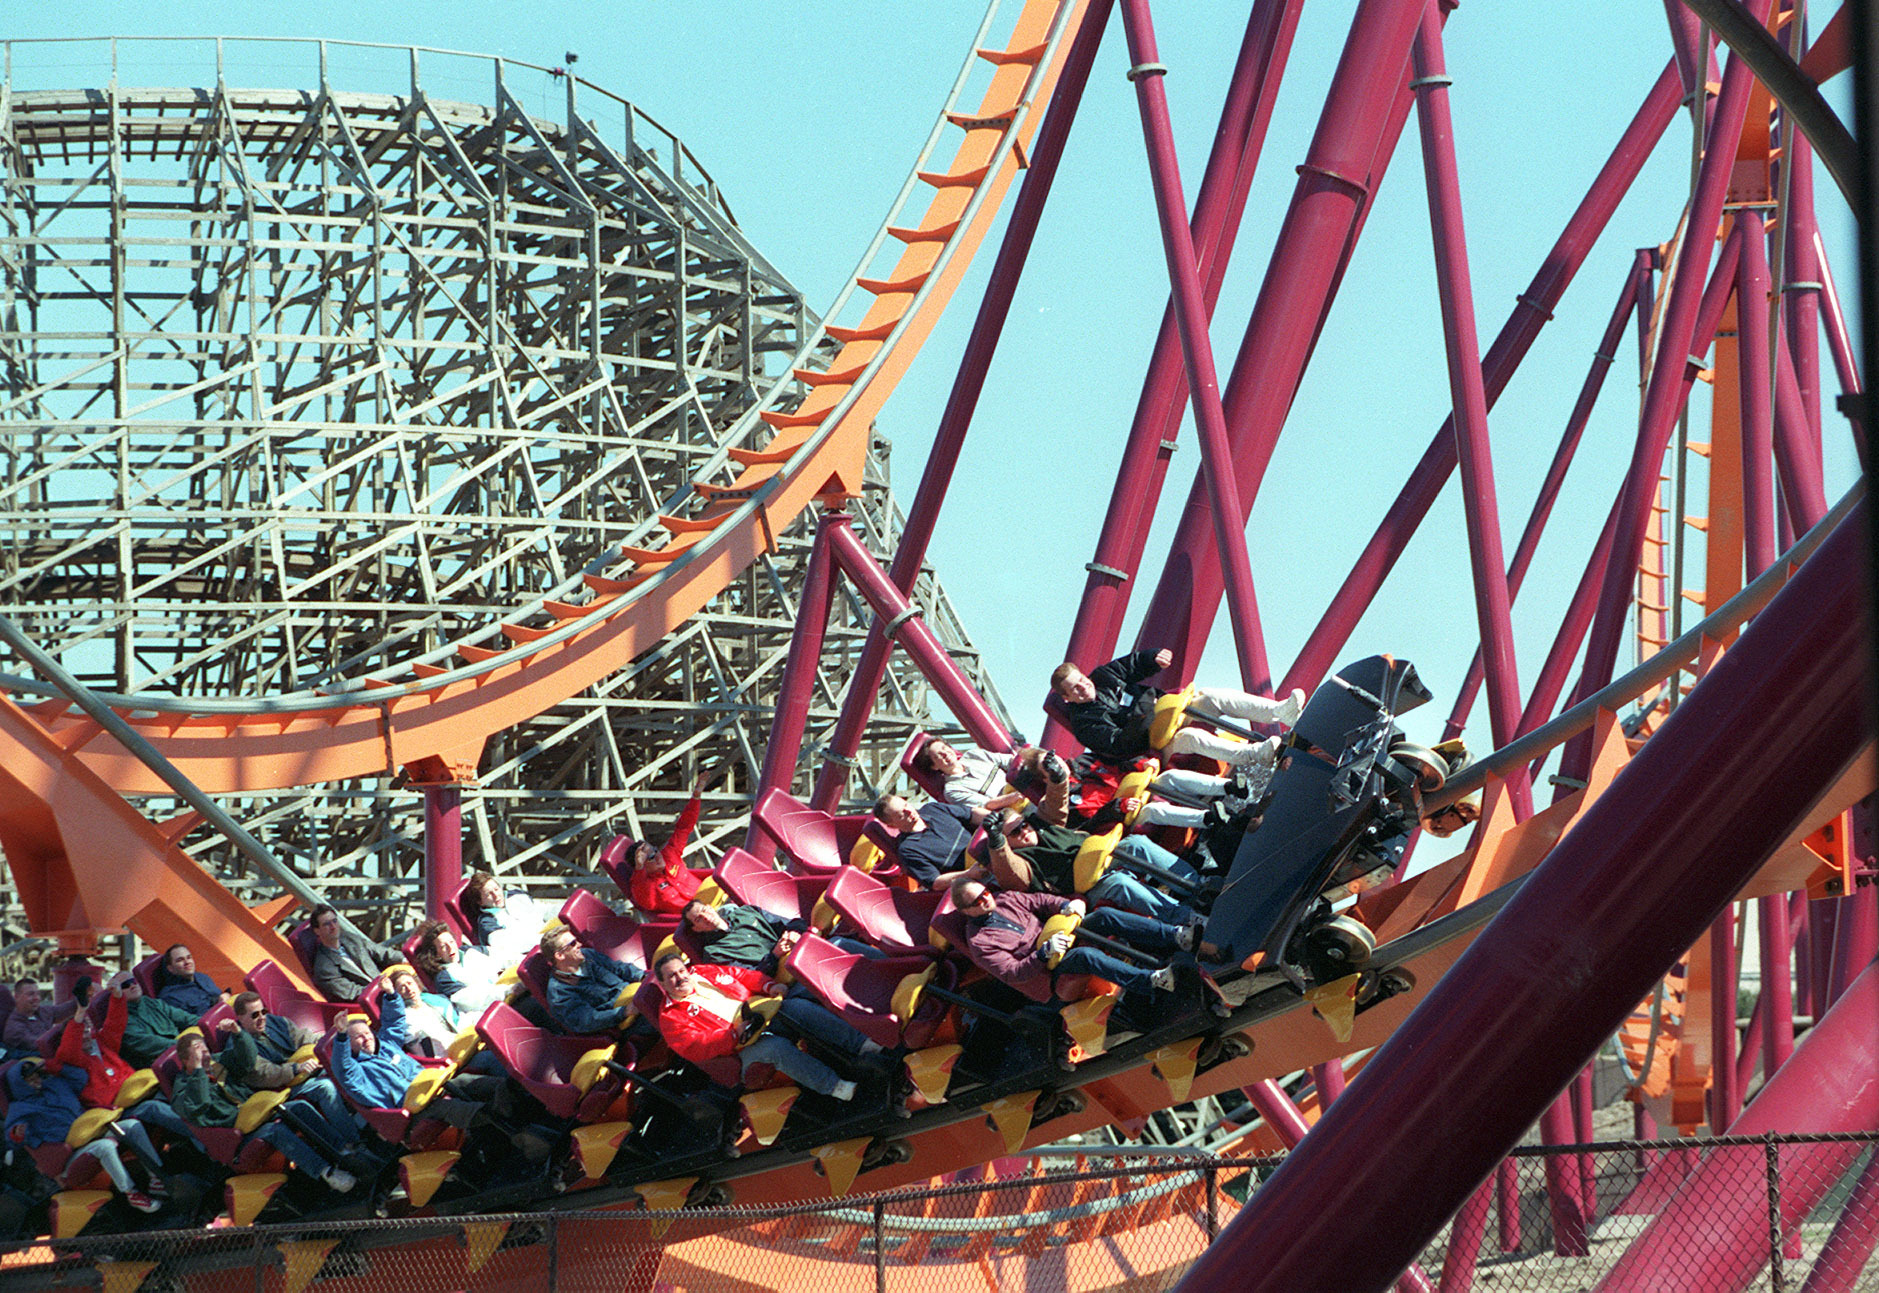 The Raging Bull rollercoaster when it first opened at Six Flags Great America, Gurnee, in 1999.